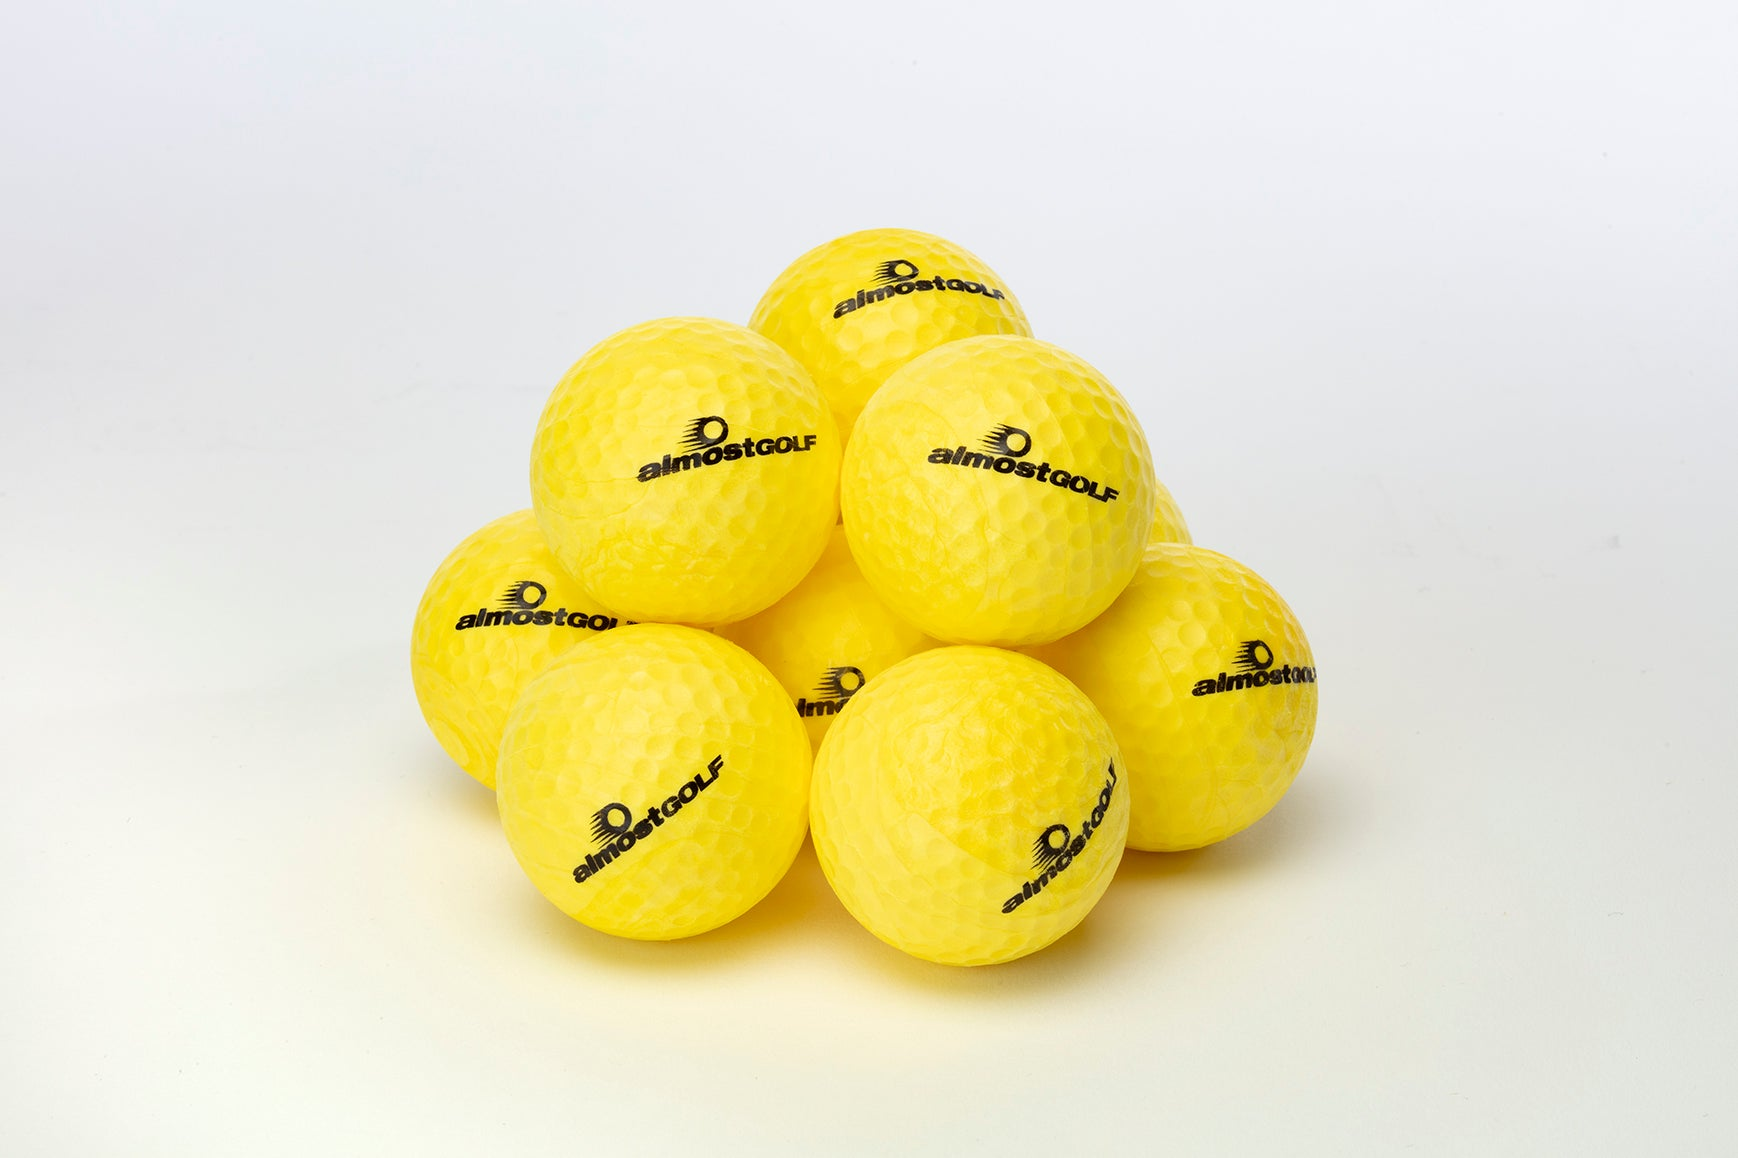 24 Ball Pack Practice Golf Balls